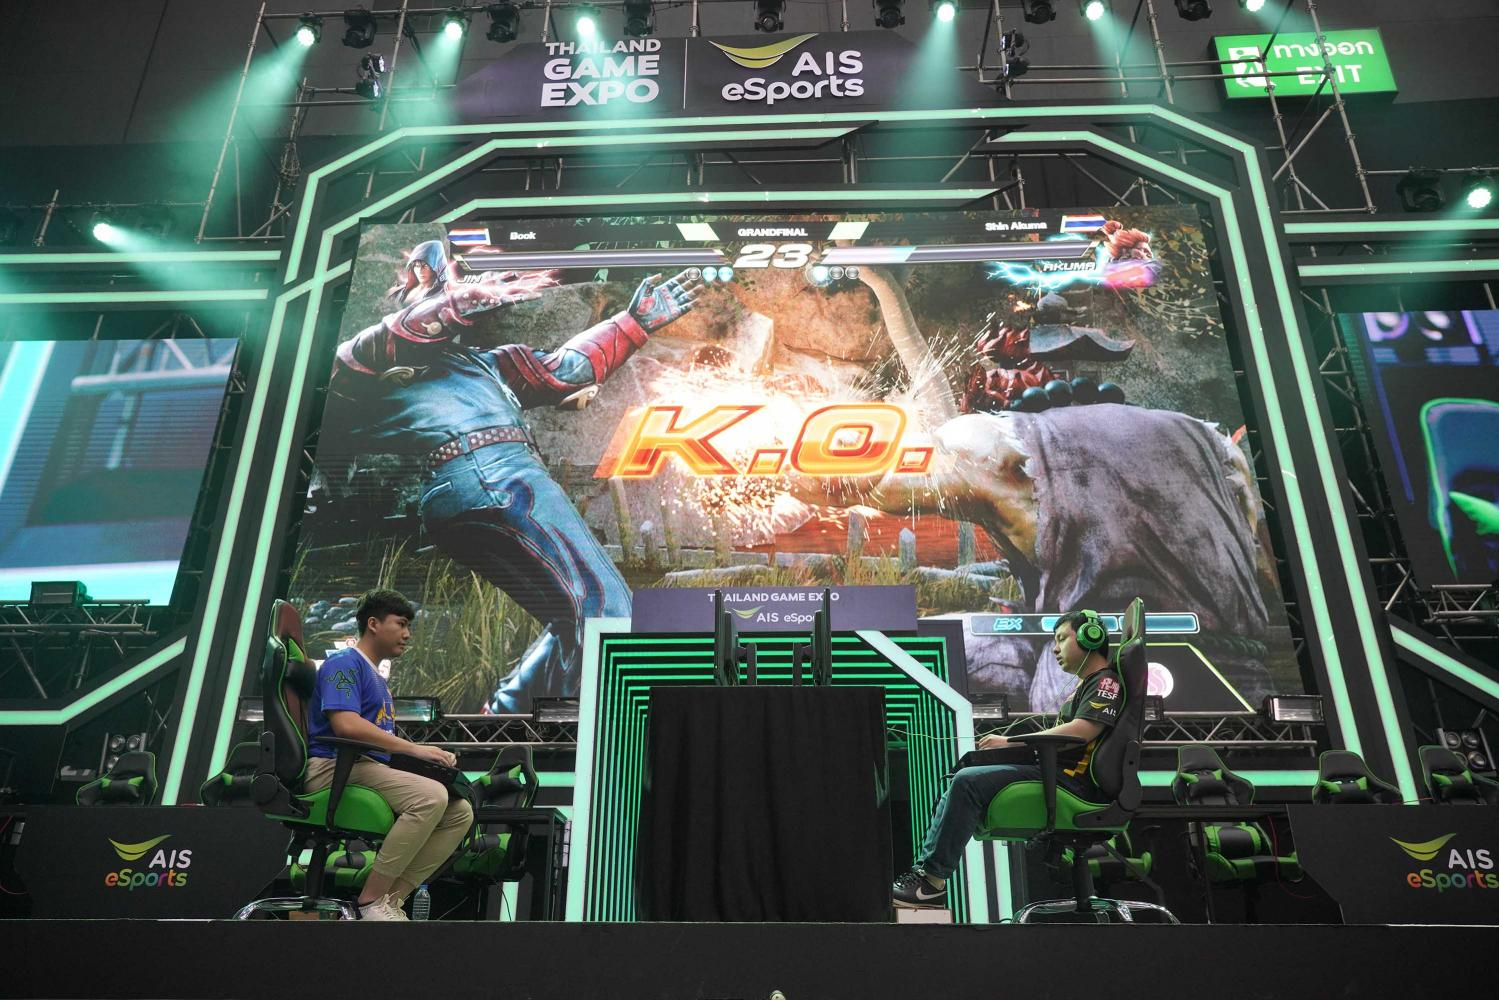 League players competing at Thailand Game Expo 2019, hosted by AIS eSports. The game market grew by 16.6% to 23.3 billion baht in 2019.